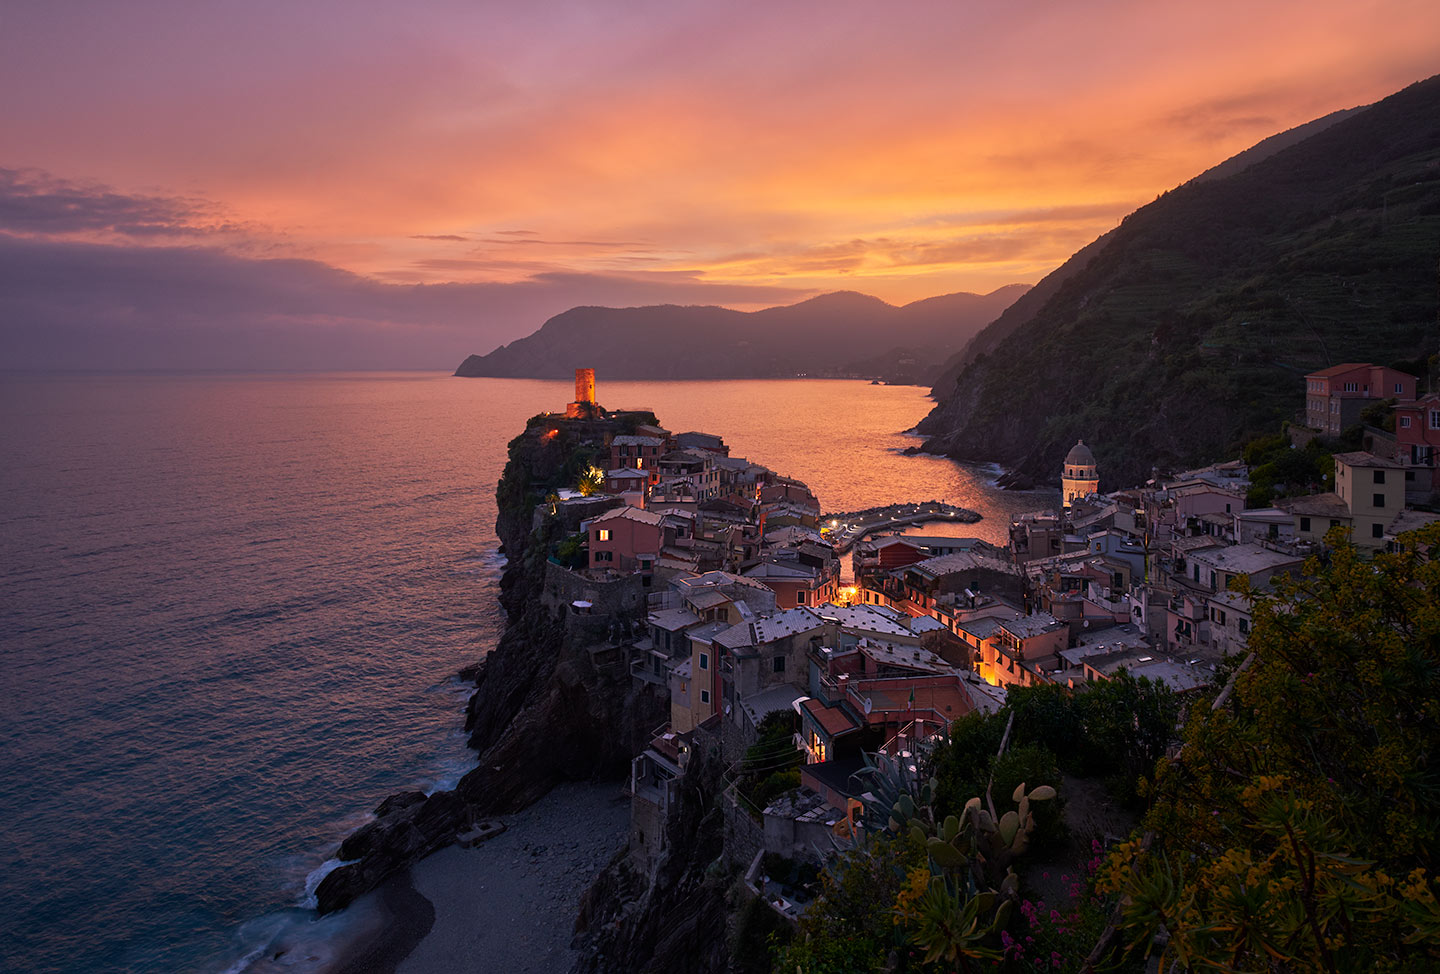 Vernazza, Italy - May 2014 - Fujifilm X-T1